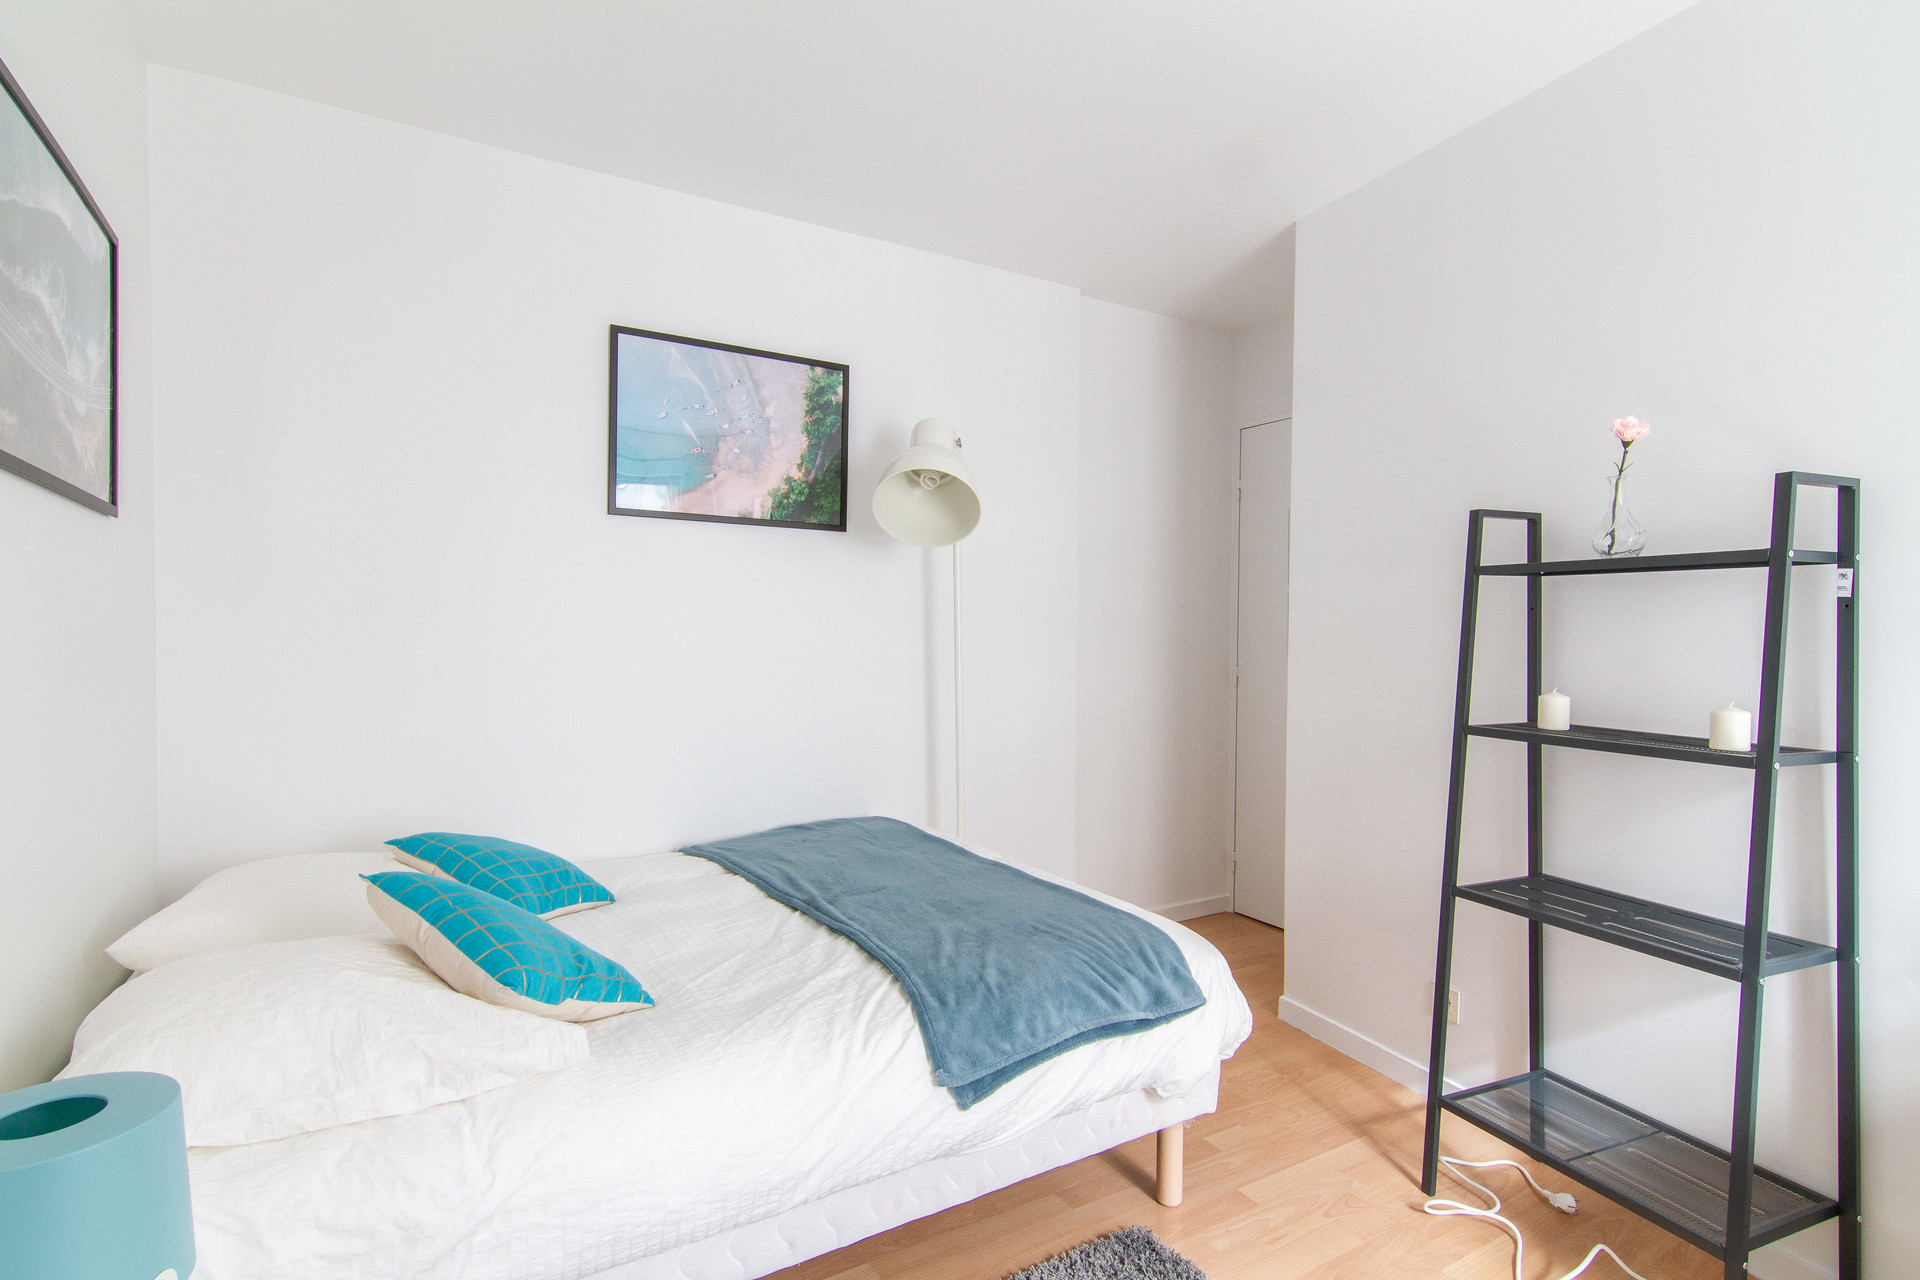 Bedroom for rent in 8-room shared apartment in Rueil-Malmaison